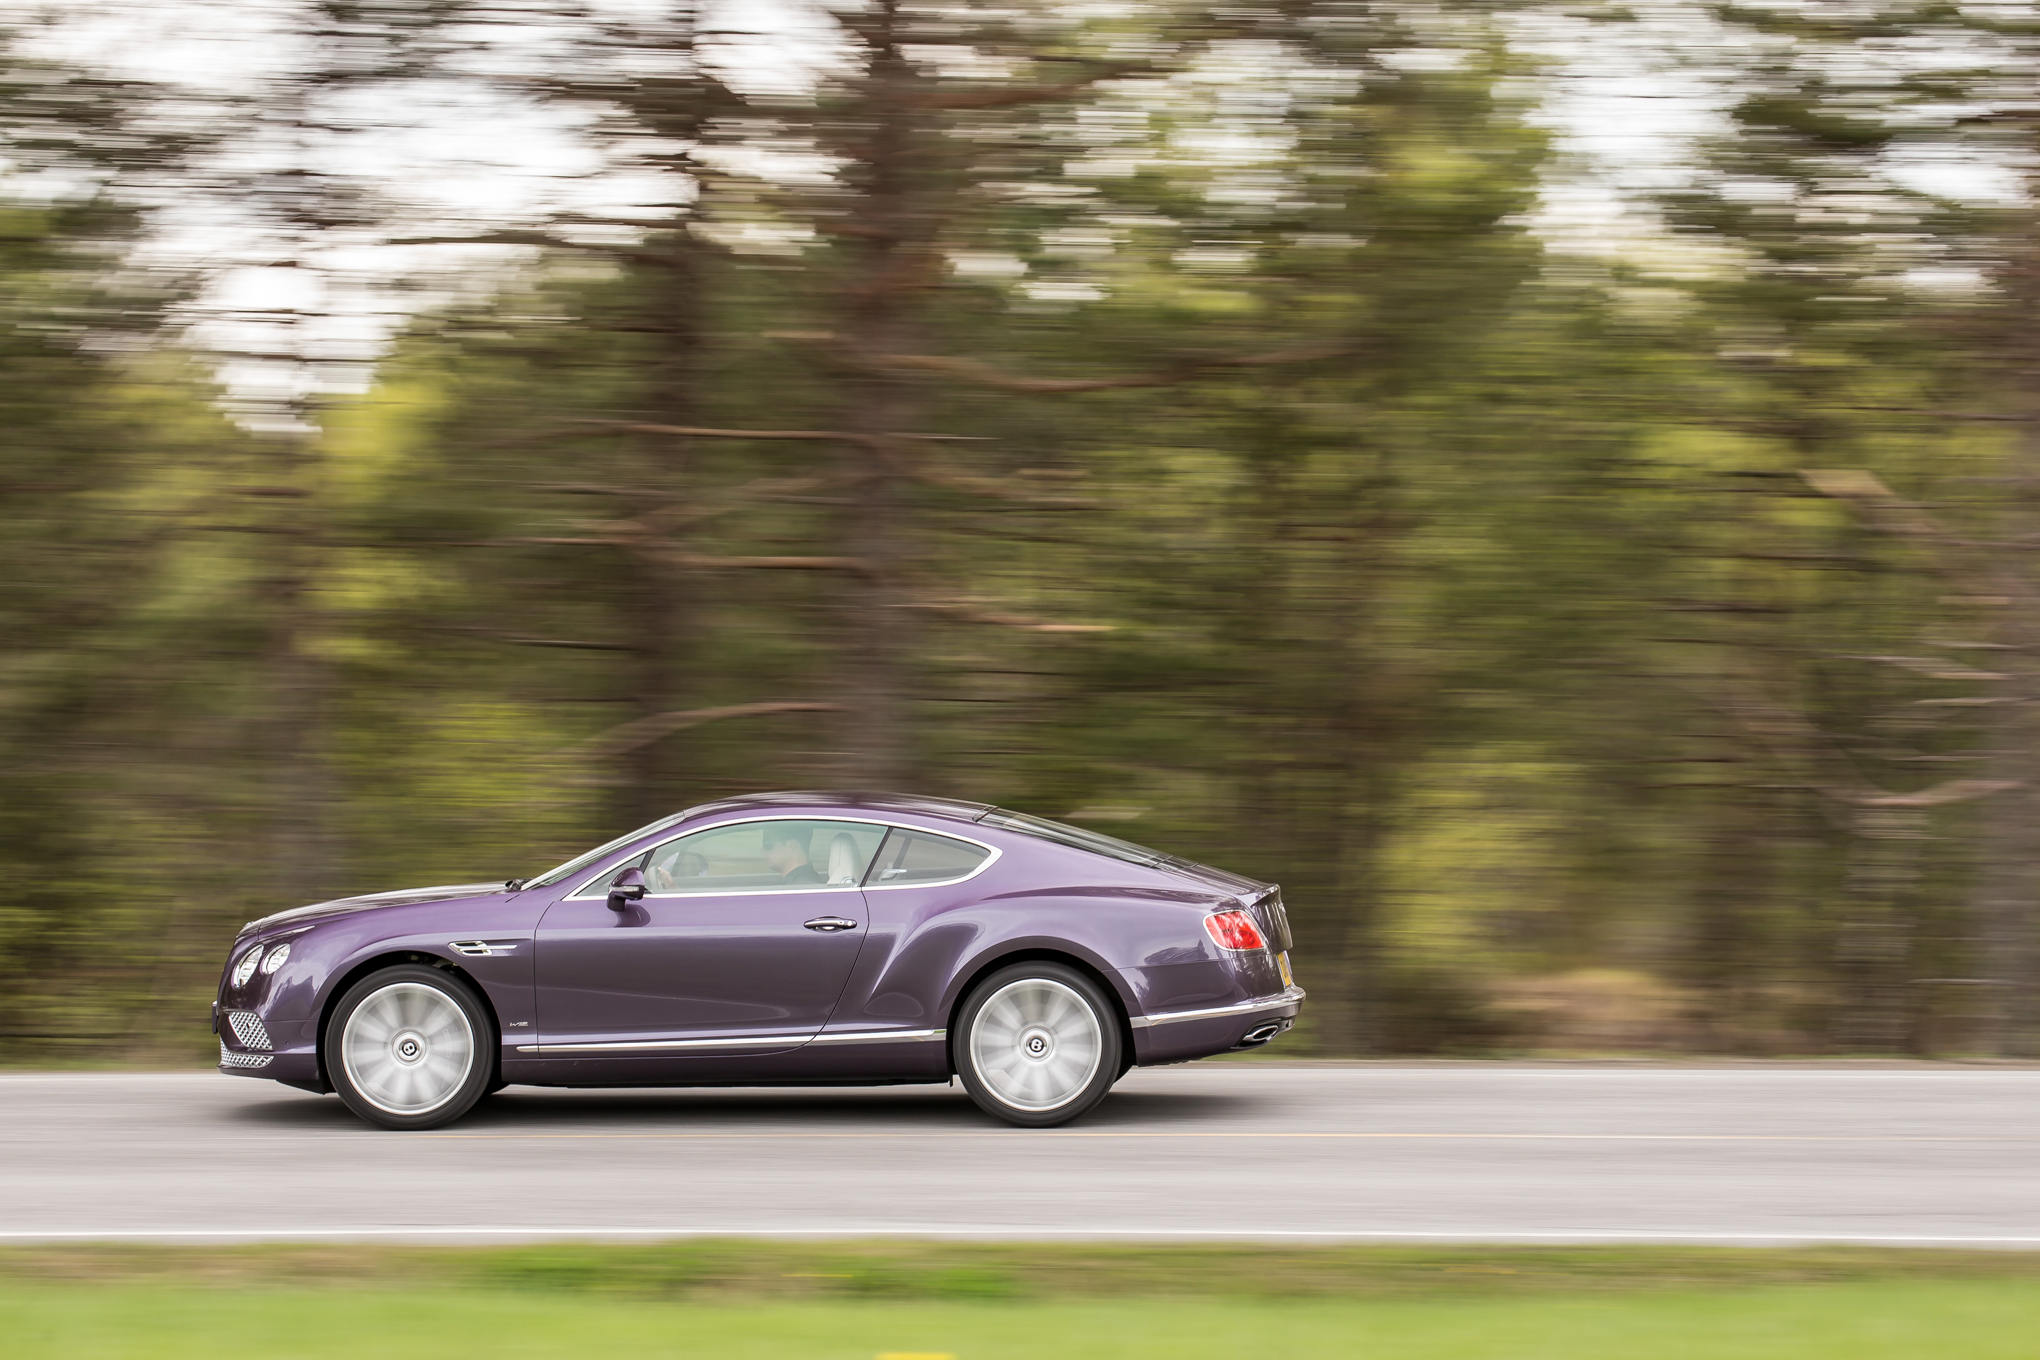 2019 Bentley Mulsanne photo - 6